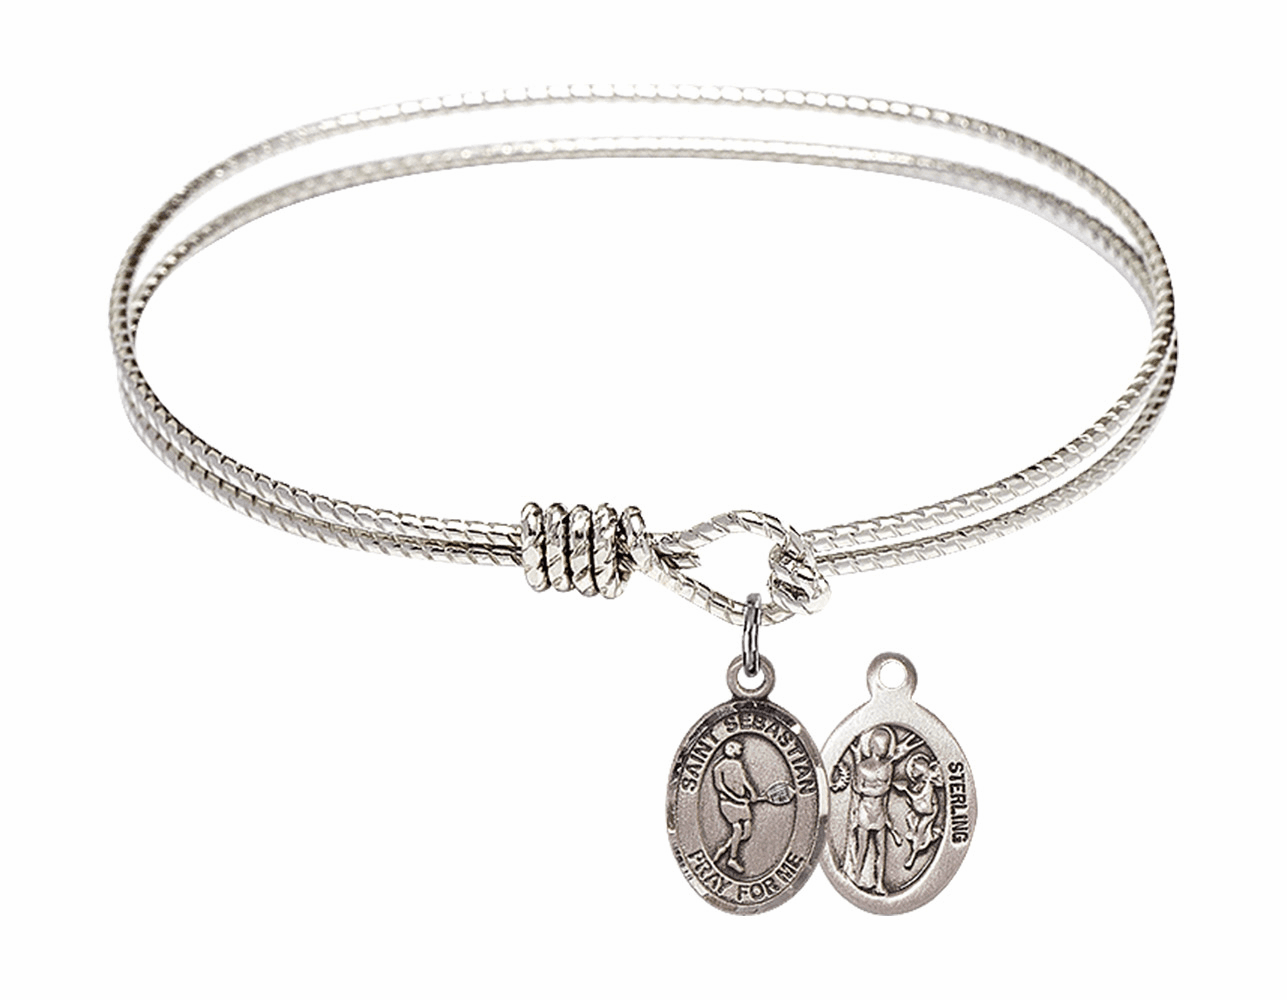 Twist Round Eye Hook St Sebastian Tennis Bangle Charm Bracelet by Bliss